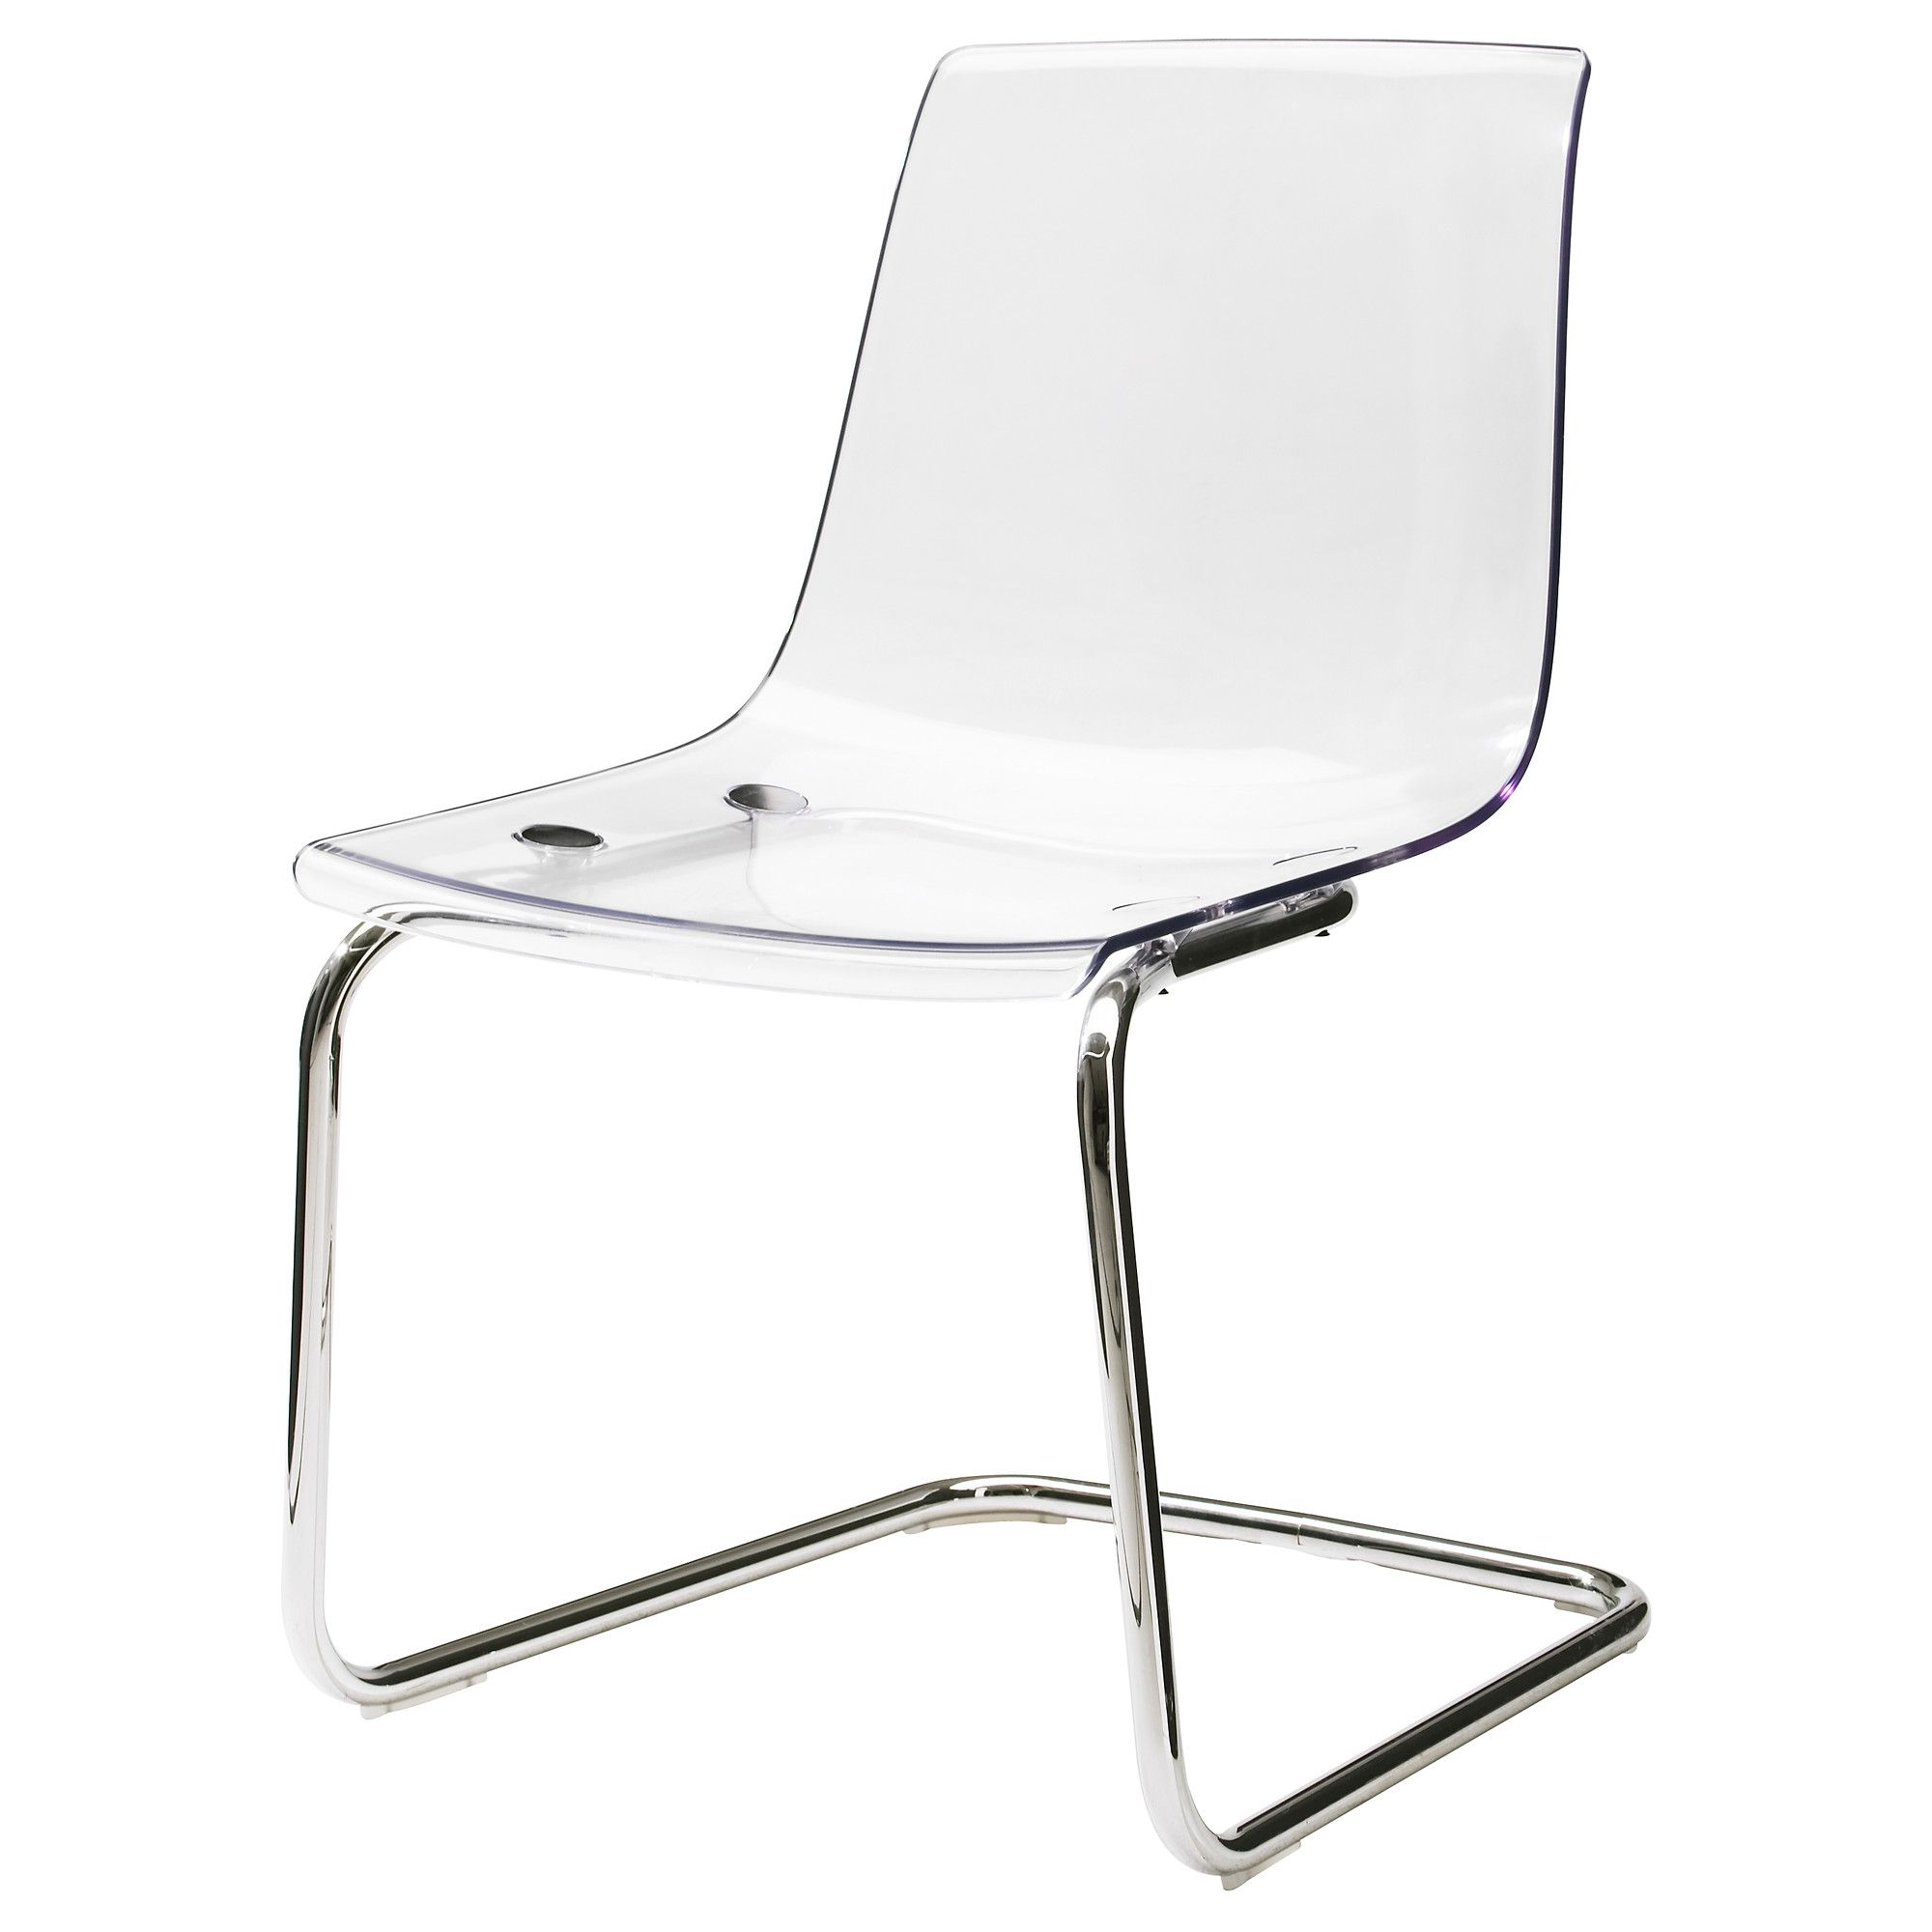 Chaise Polycarbonate Ikea Tobias Chair Transparent Chrome Plated Another Transparent